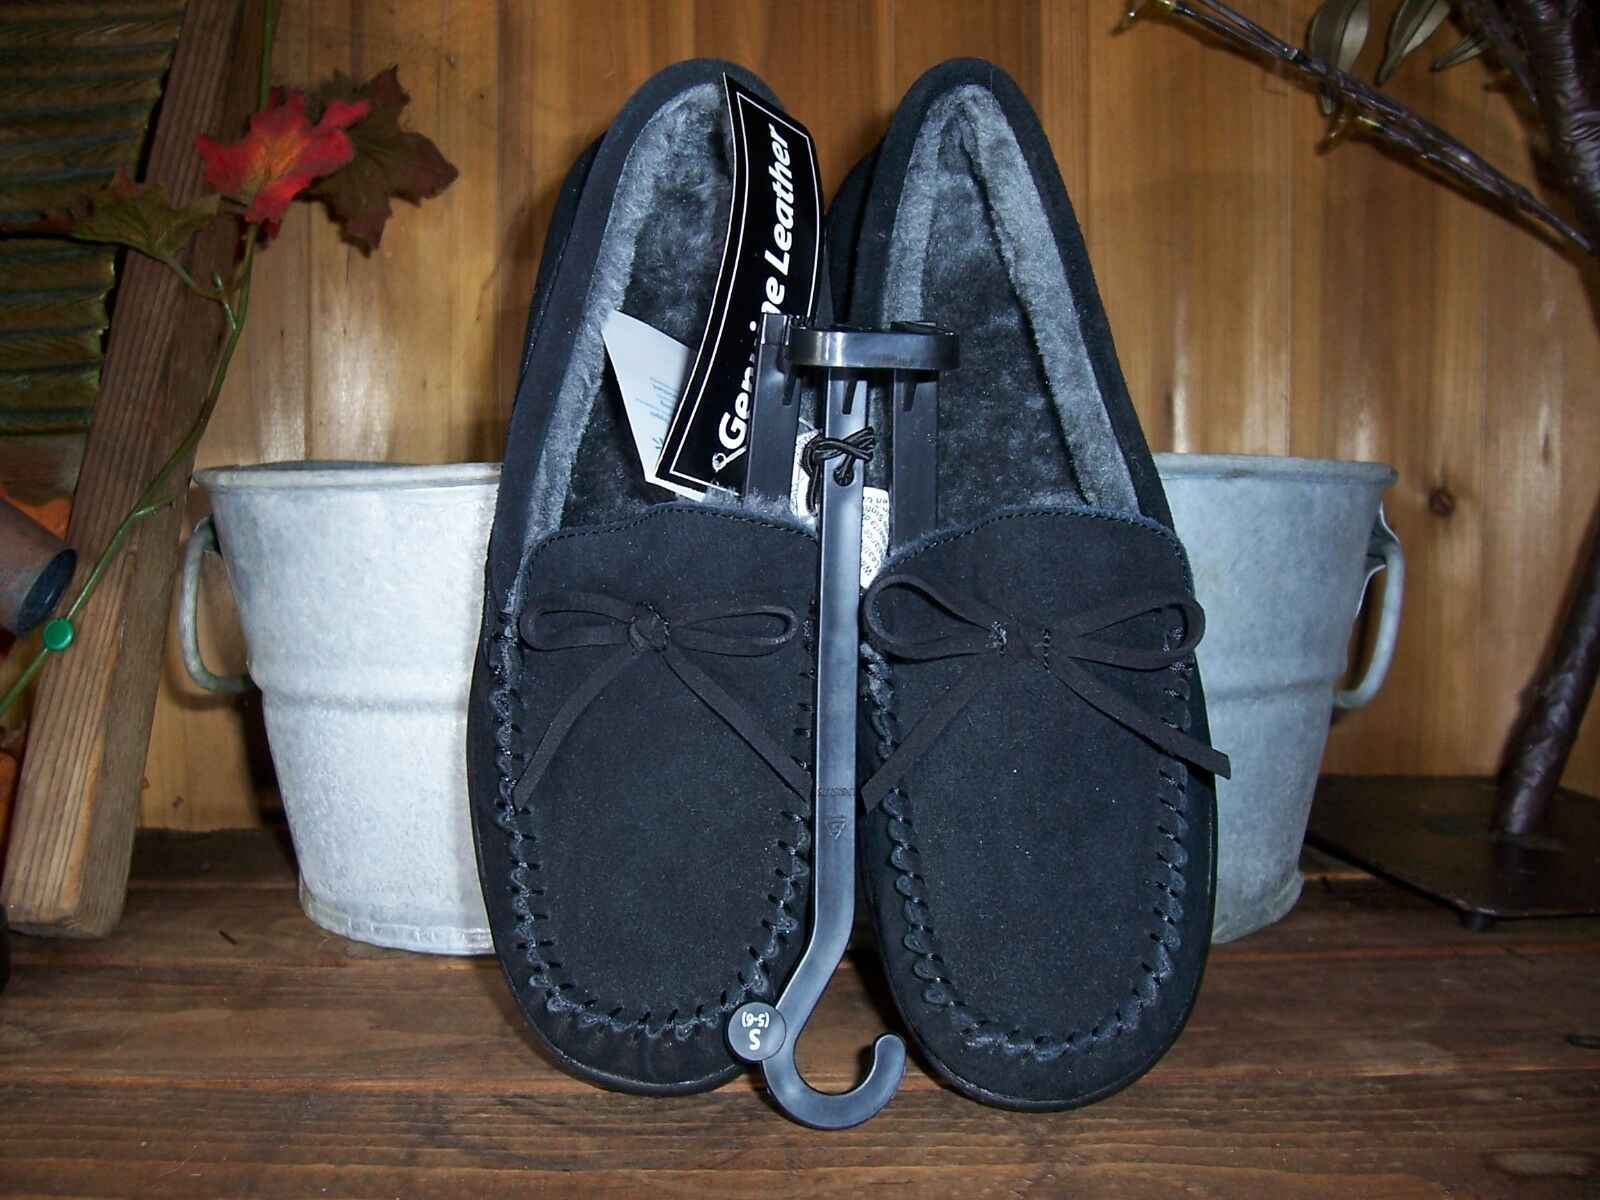 WOMENS GENUINE LEATHER MOCCASIN STYLE CASUAL SLIPPERS SIZE SMALL 5-6 BLACK NEW